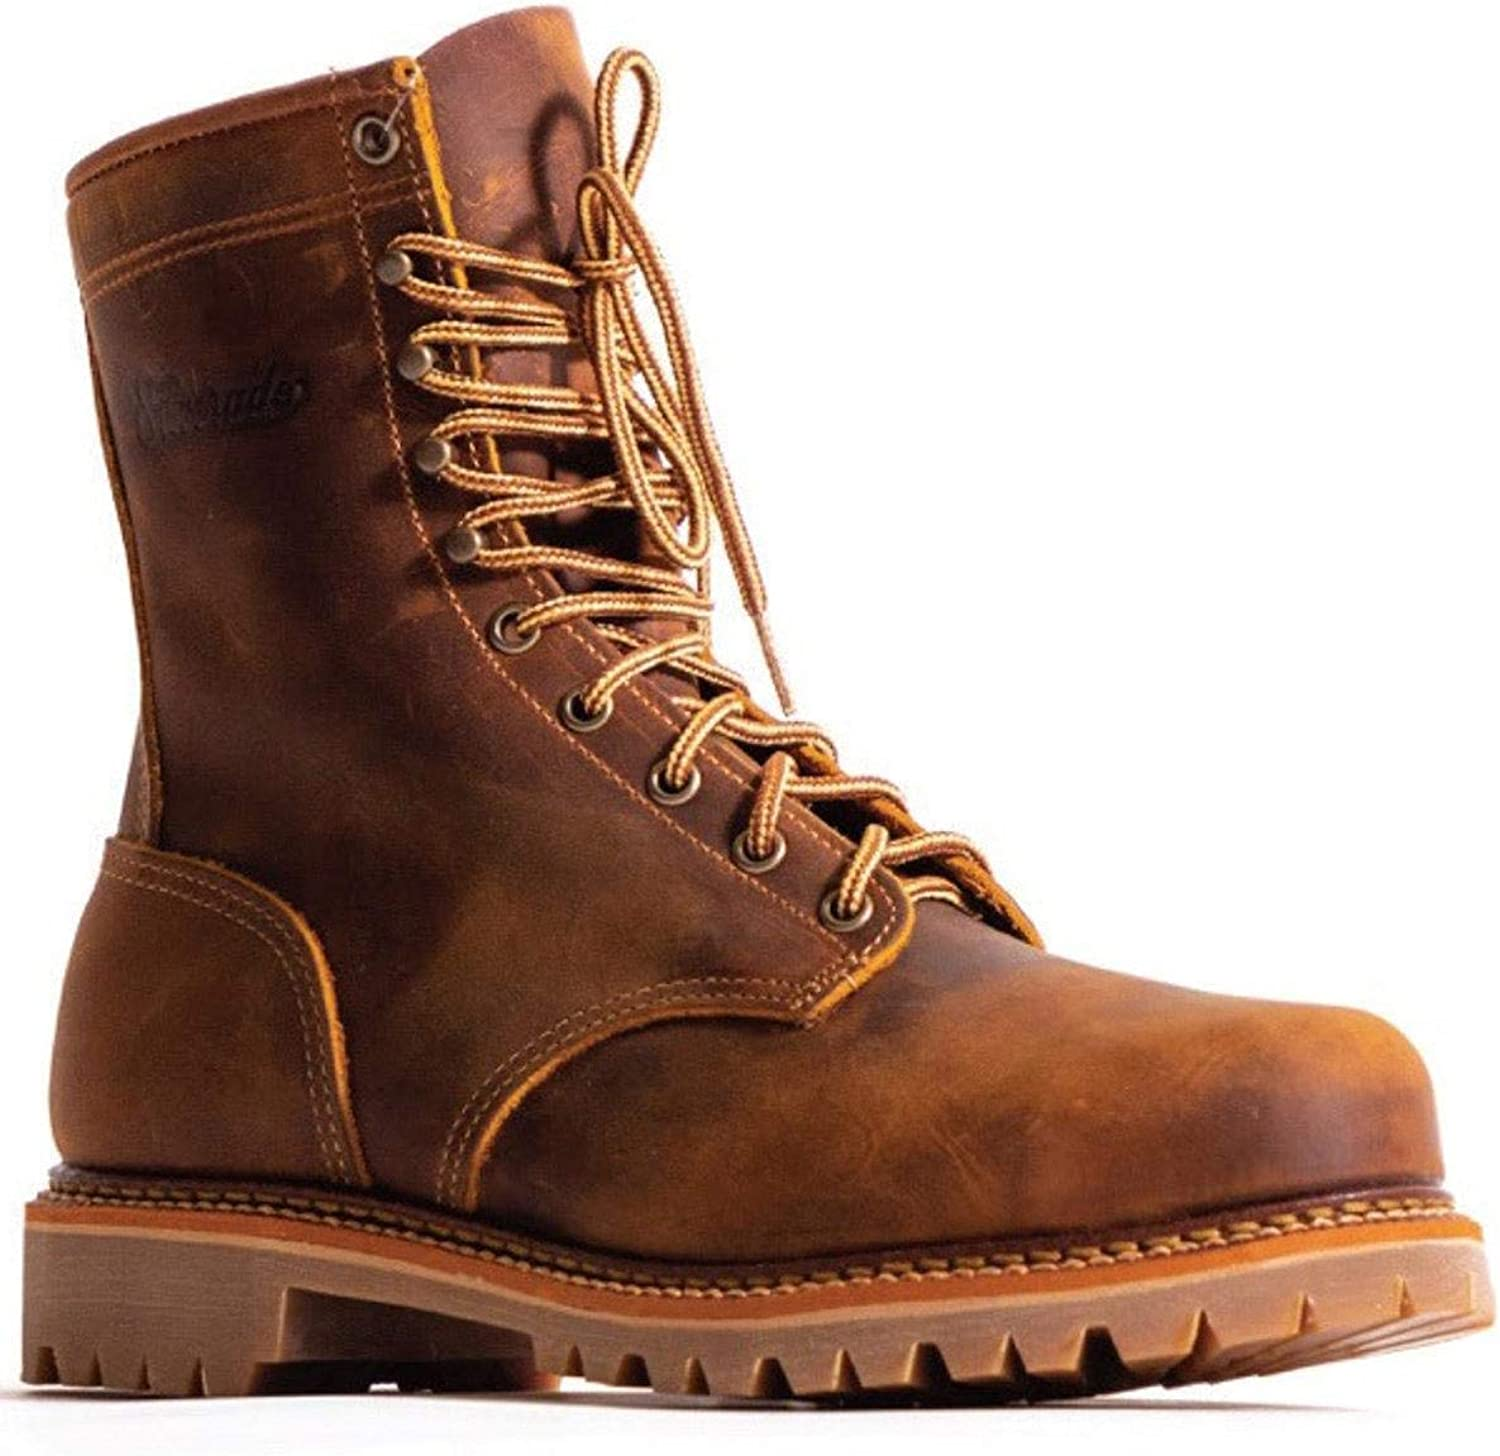 Lace-Up Work Boot Steel Toe